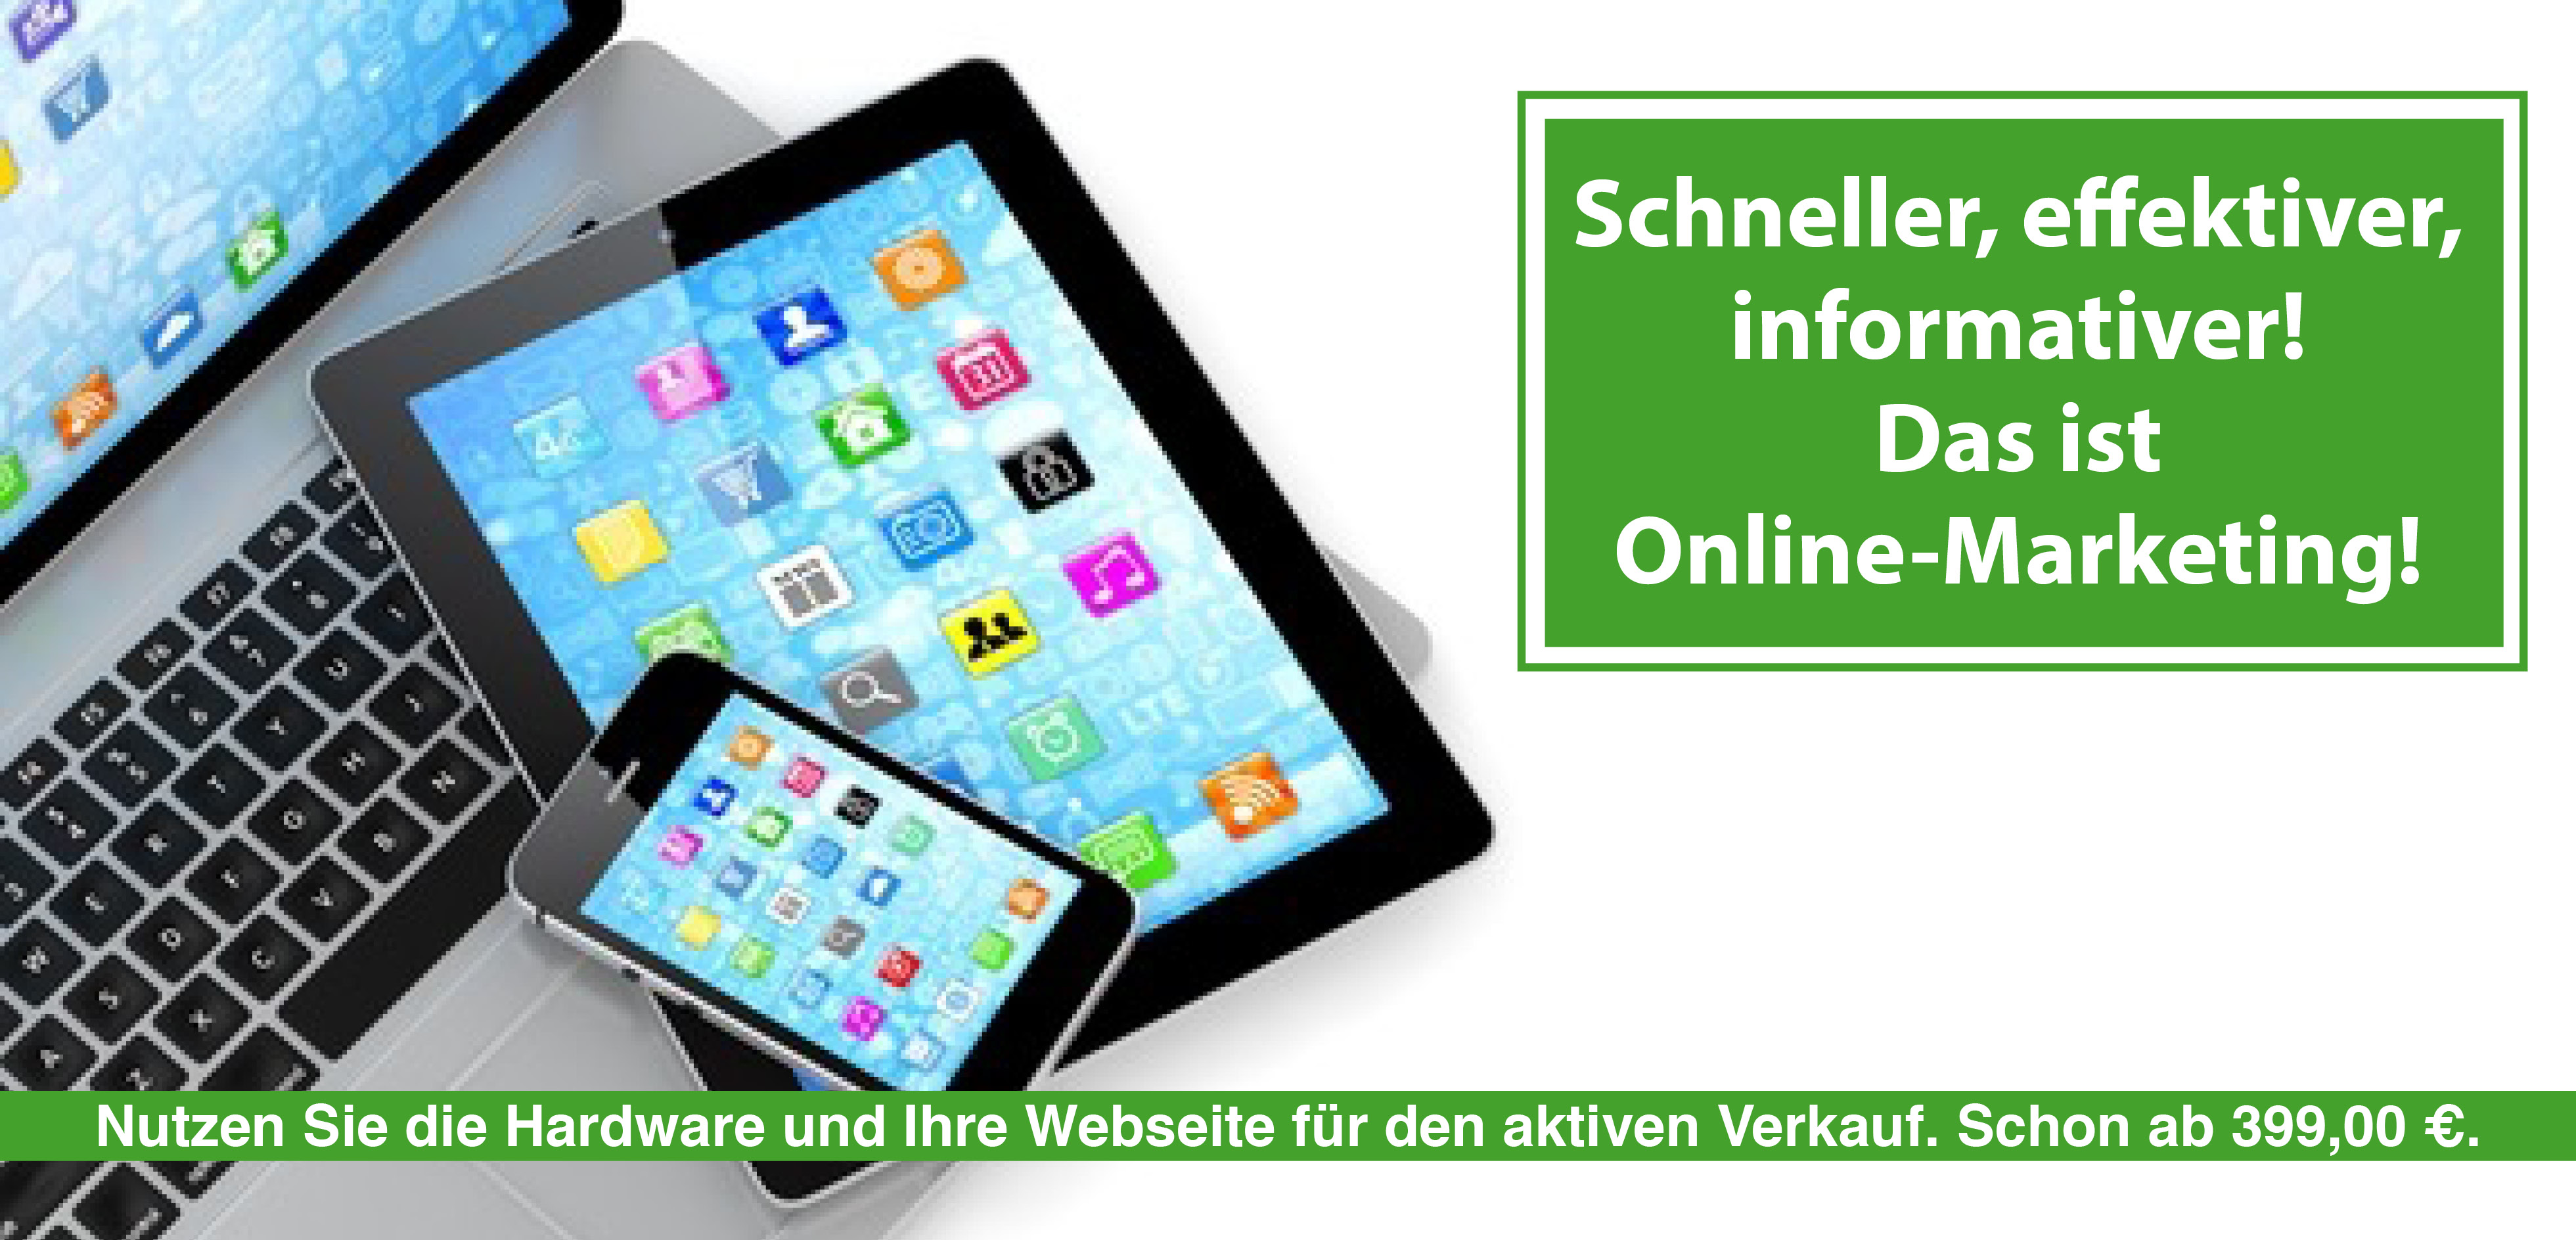 Schneller, effektiver, informativer. Das ist Online-Marketing!